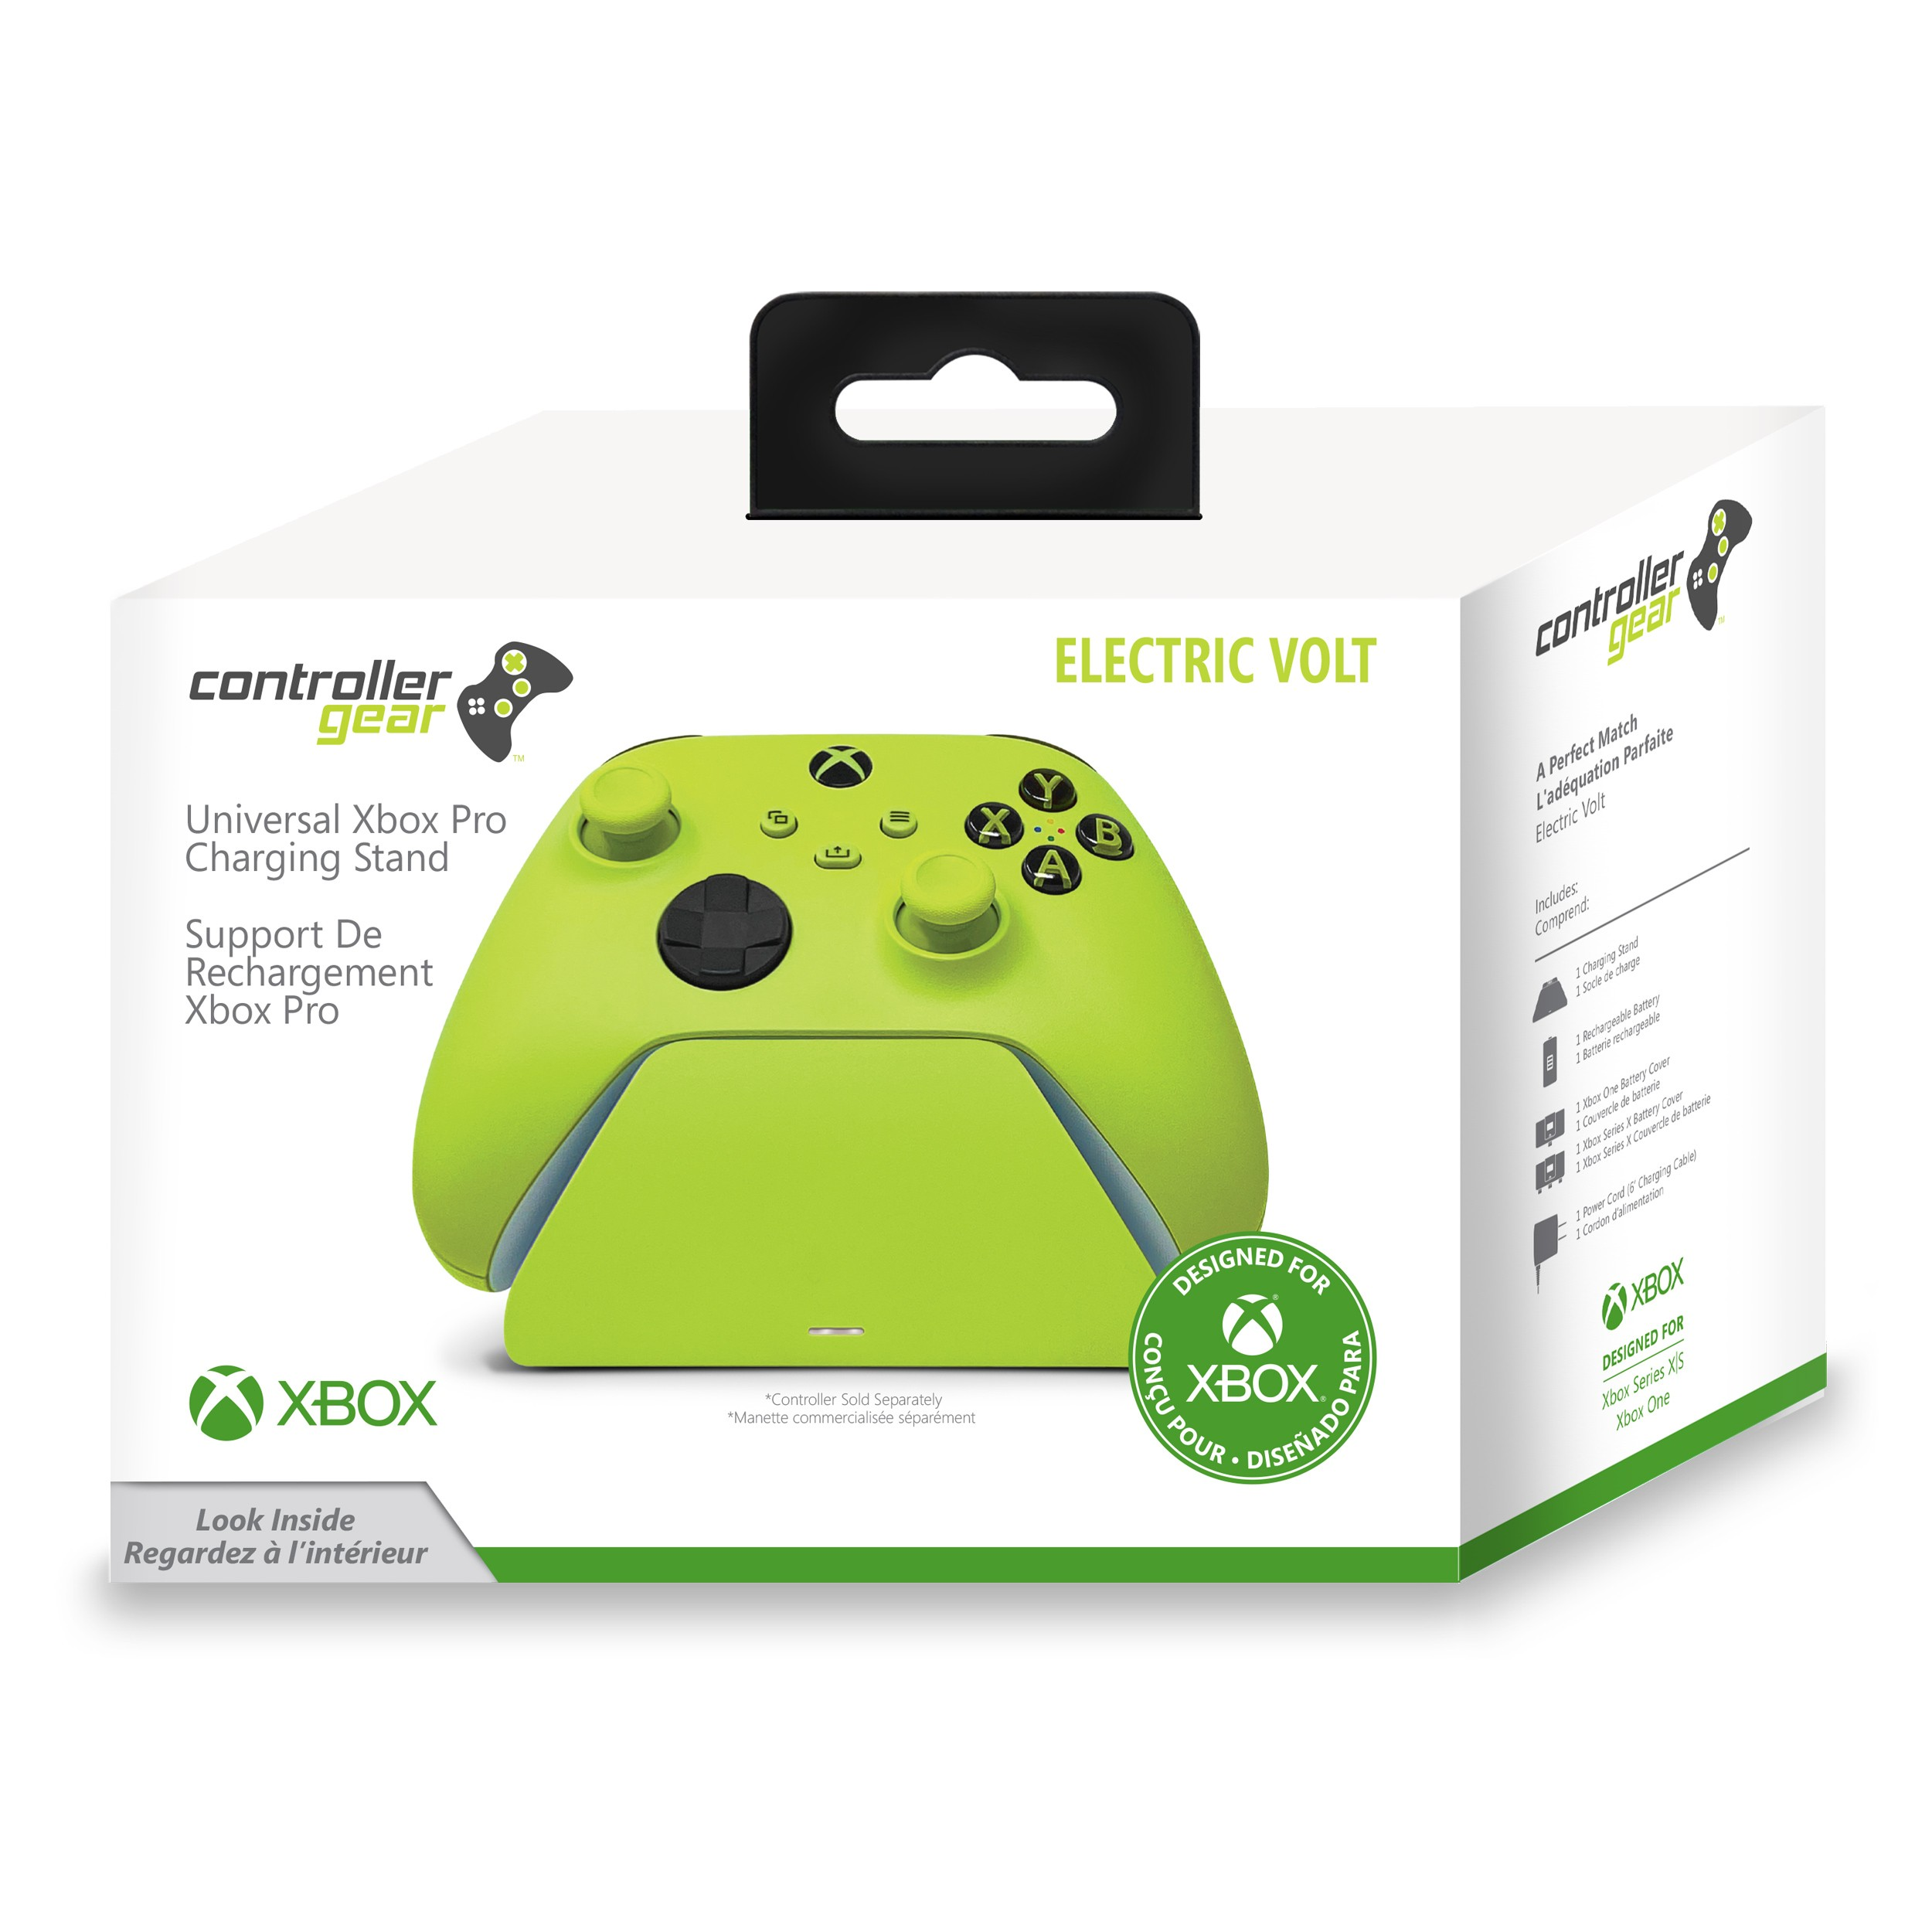 Electric Volt Universal Xbox Pro Charging Stand - 1